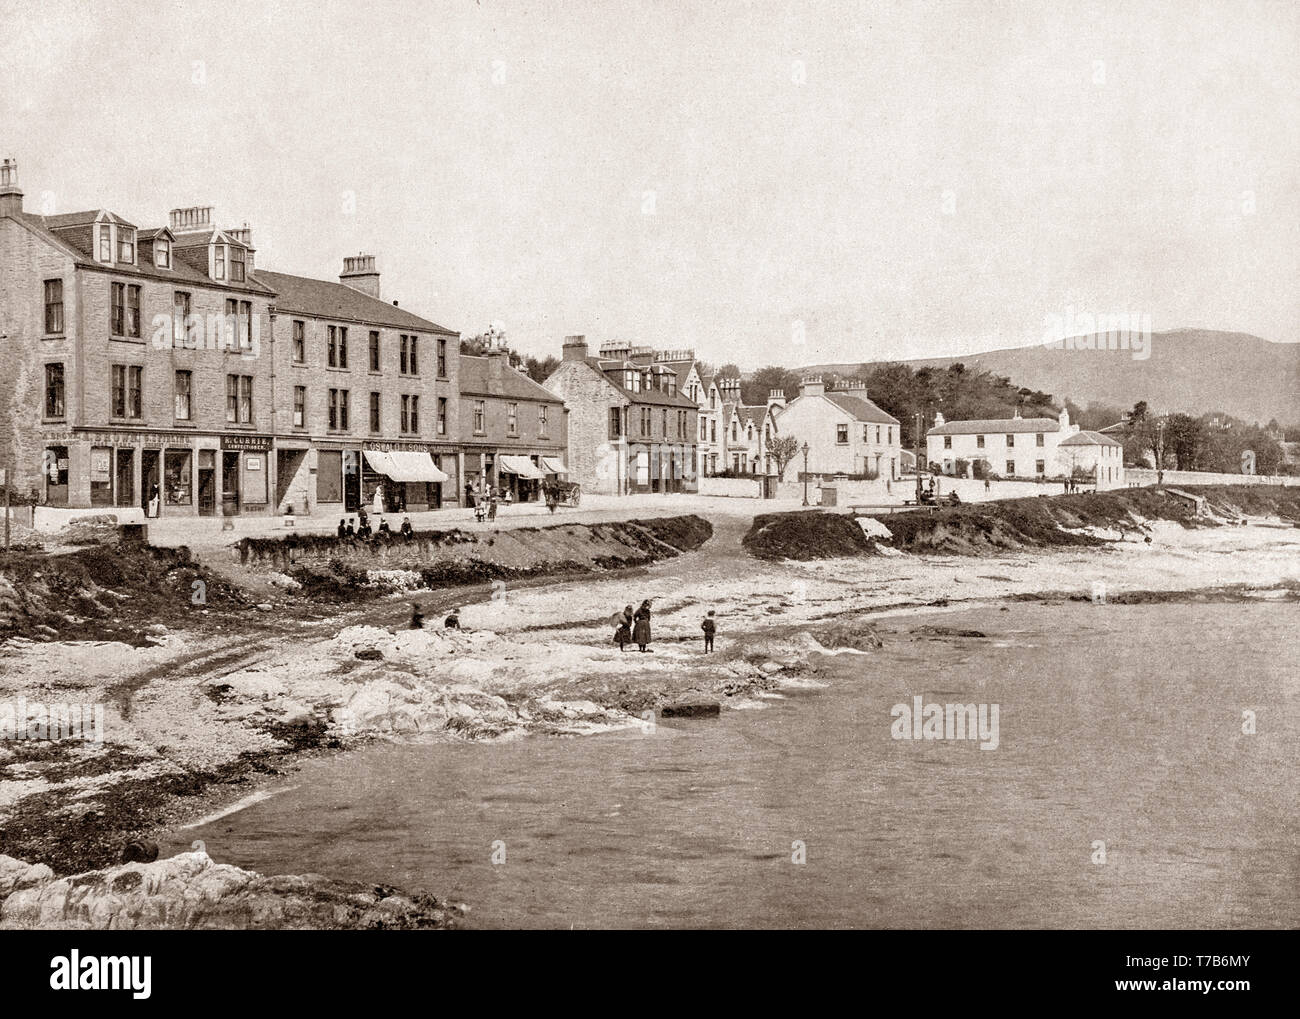 A late 19th Century view of the seafront of Kirn, a village in Argyll and Bute in the Scottish Highlands on the west shore of the Firth of Clyde on the Cowal peninsula. This photograph was shot from the landing stage, a regular stop for the Clyde steamer services, bringing holidaymakers  from the Glasgow area to the town. - Stock Image